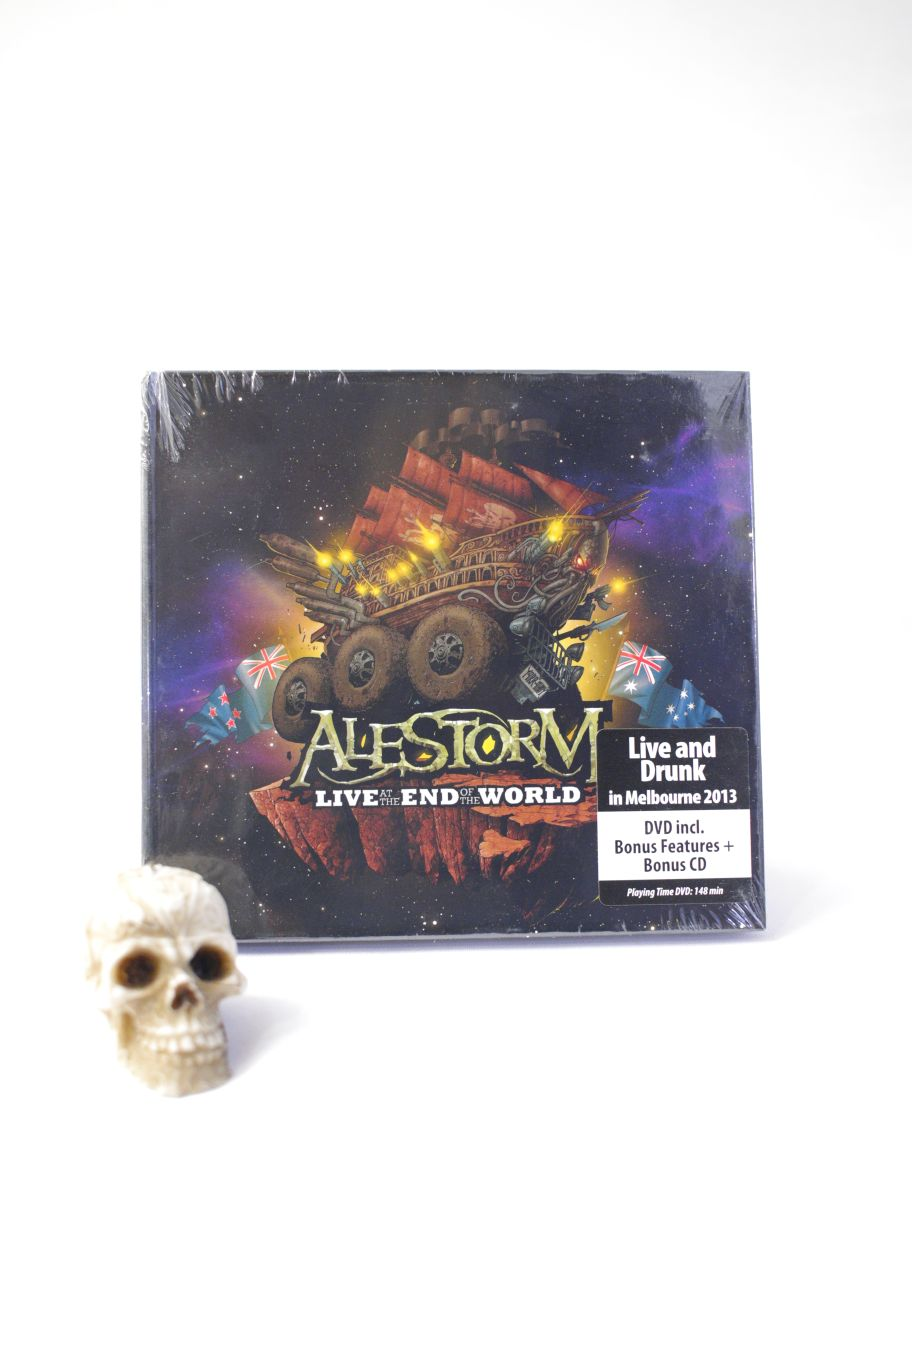 CD ALESTORM LIVE AT THE END OF THE WORLD LTD CD+DVD